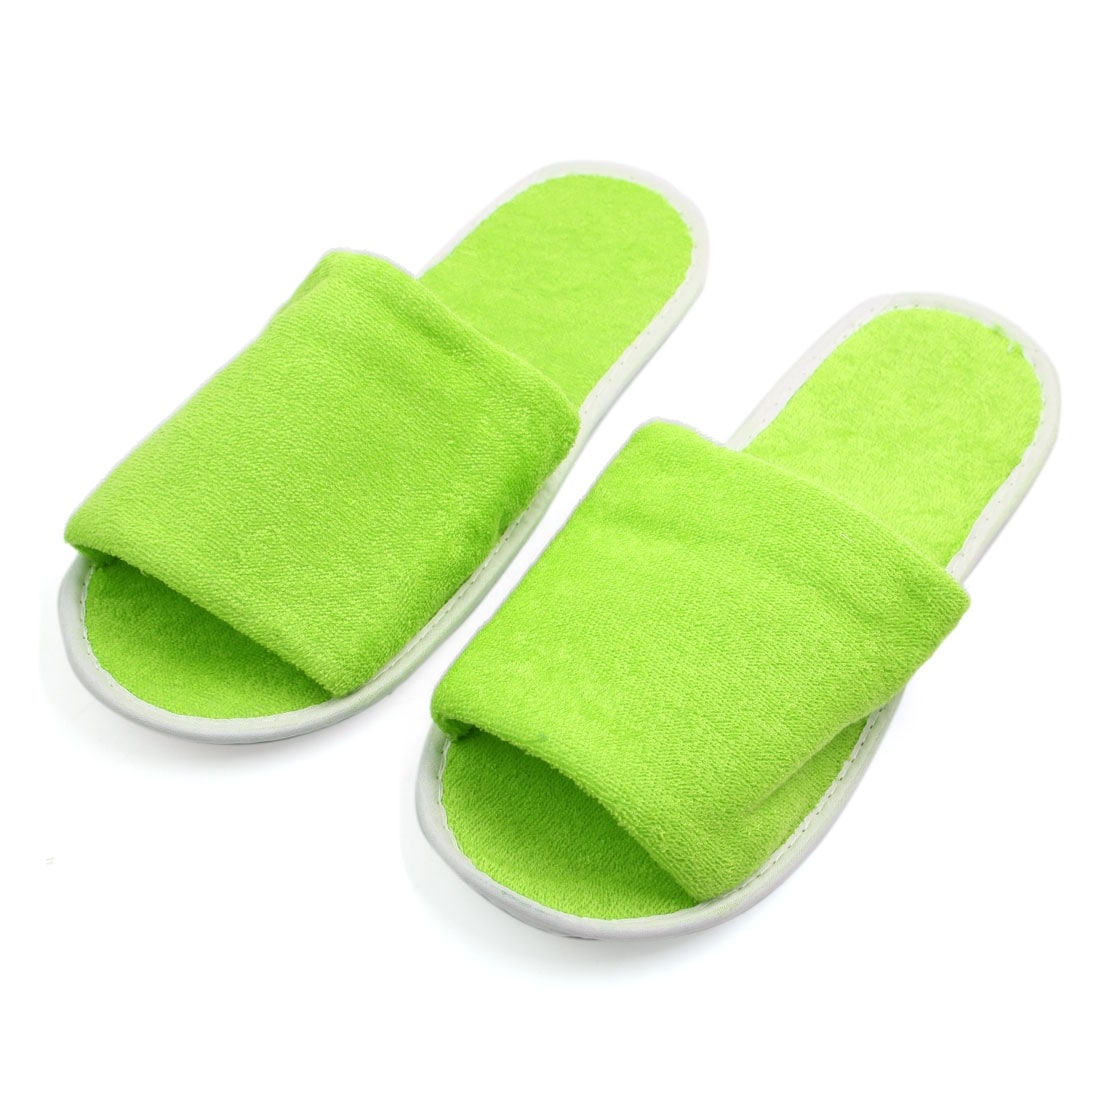 Baby Hotel Slippers 1 Pair Green Foldable Disposable Slipper Hotel Spa Guest Slippers For Women